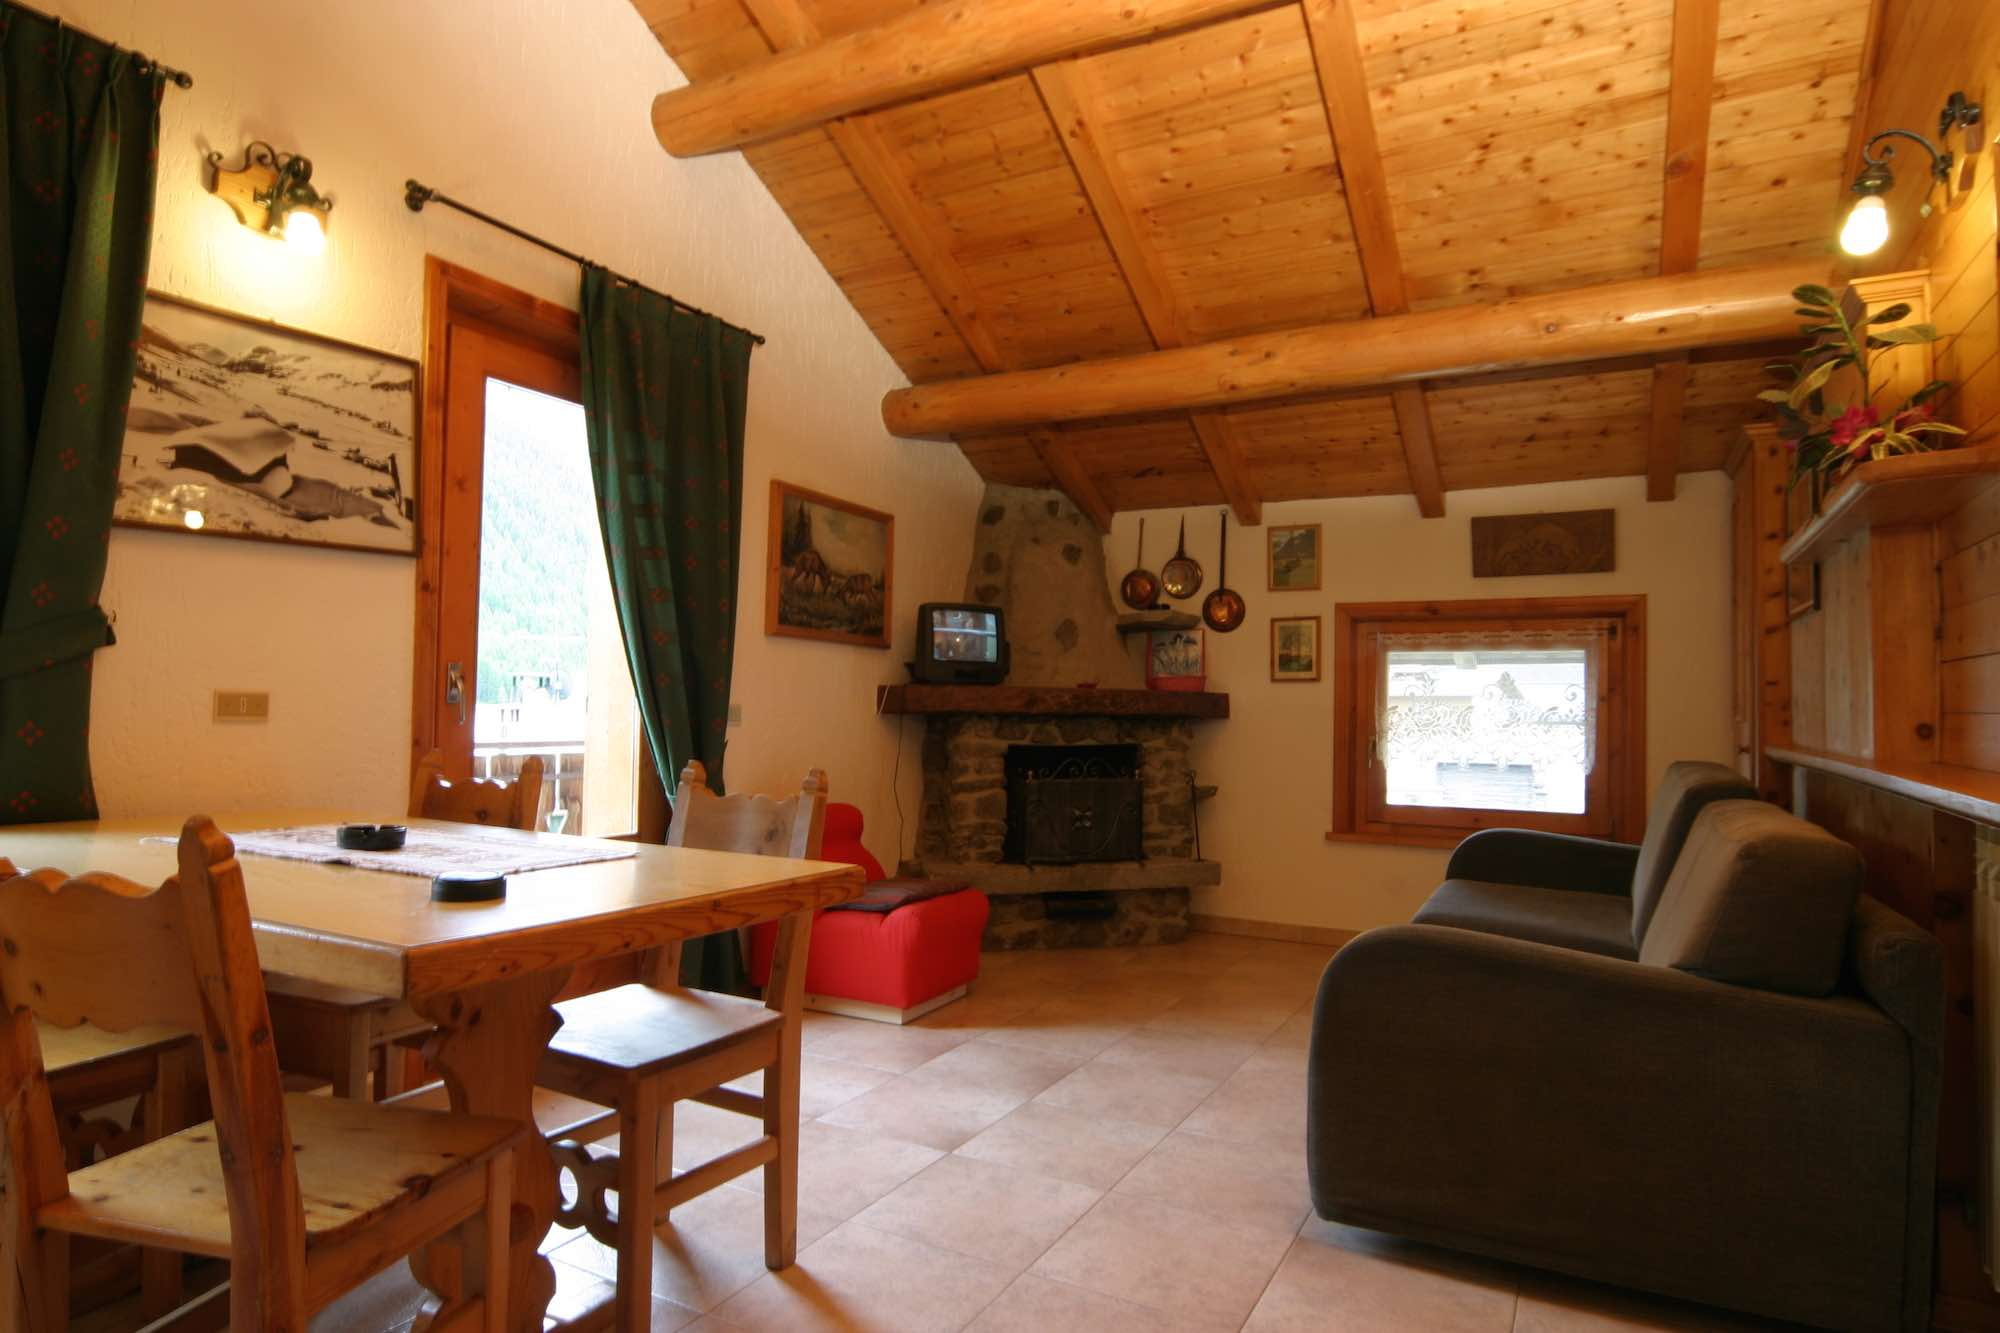 Bait da Borch - Via Saroch N.1430/f, Livigno 23041 - Apartment - Appartamento Vetta 2